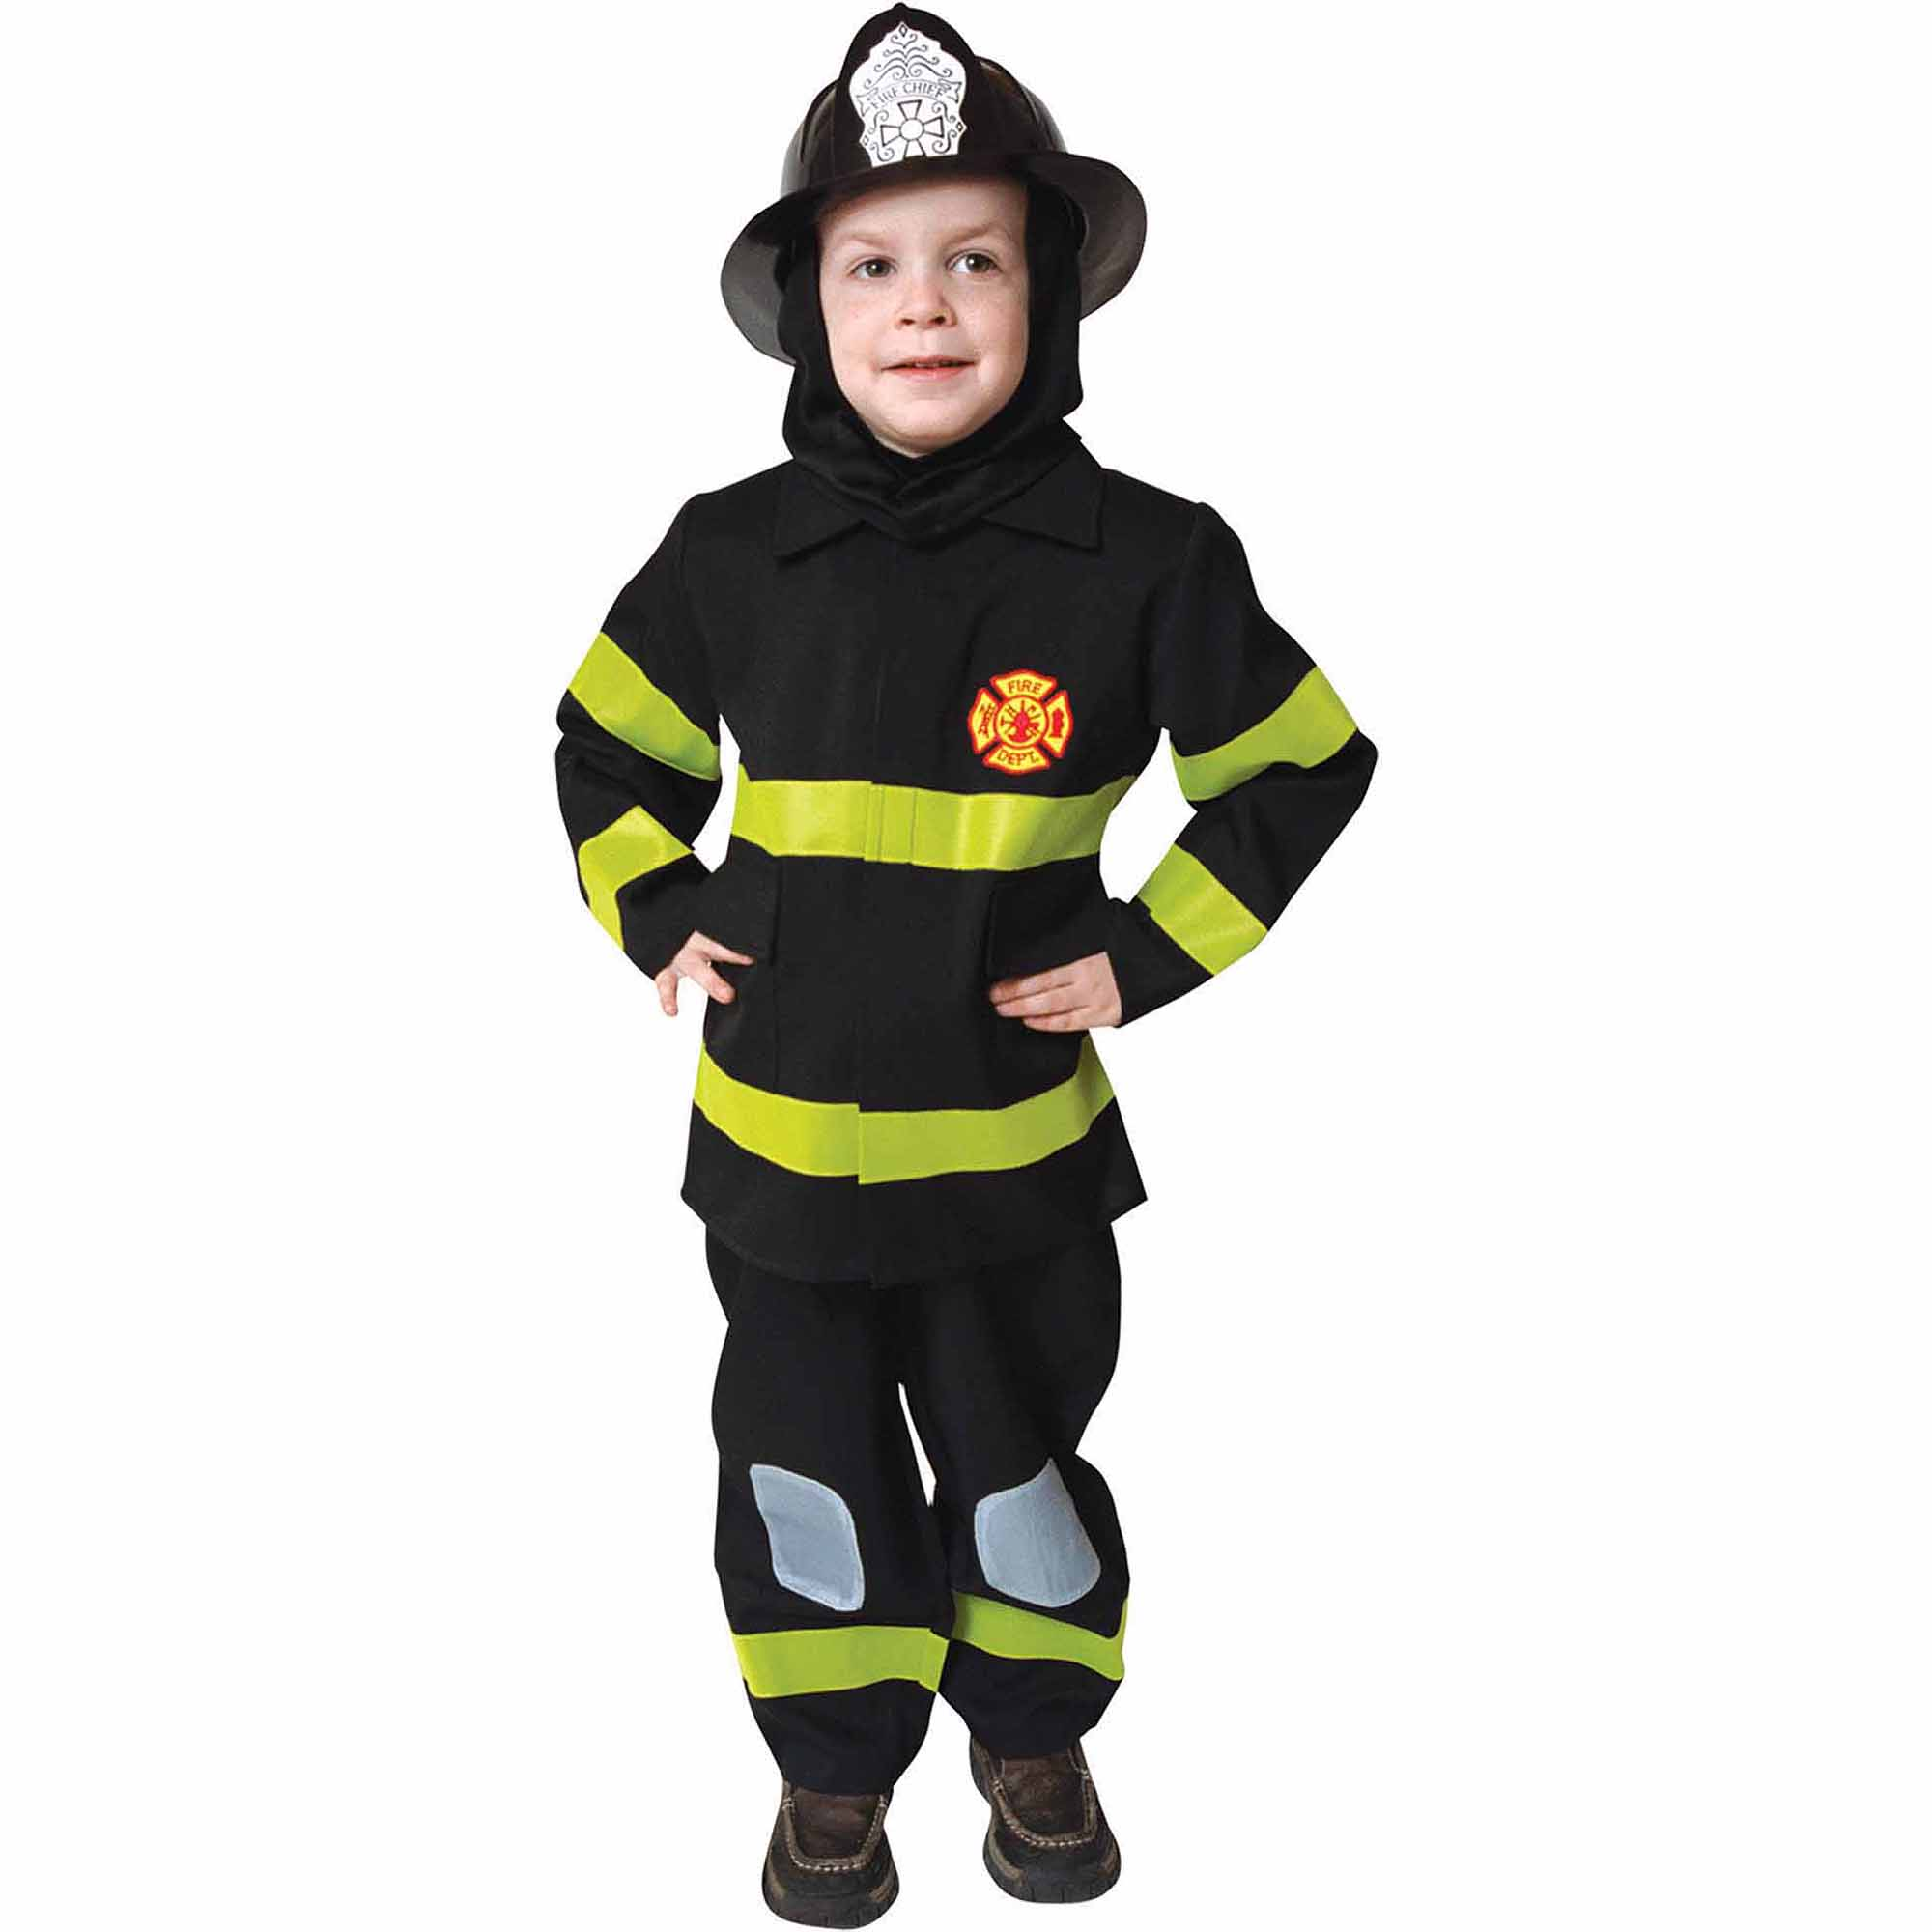 Fire Fighter Child Halloween Costume